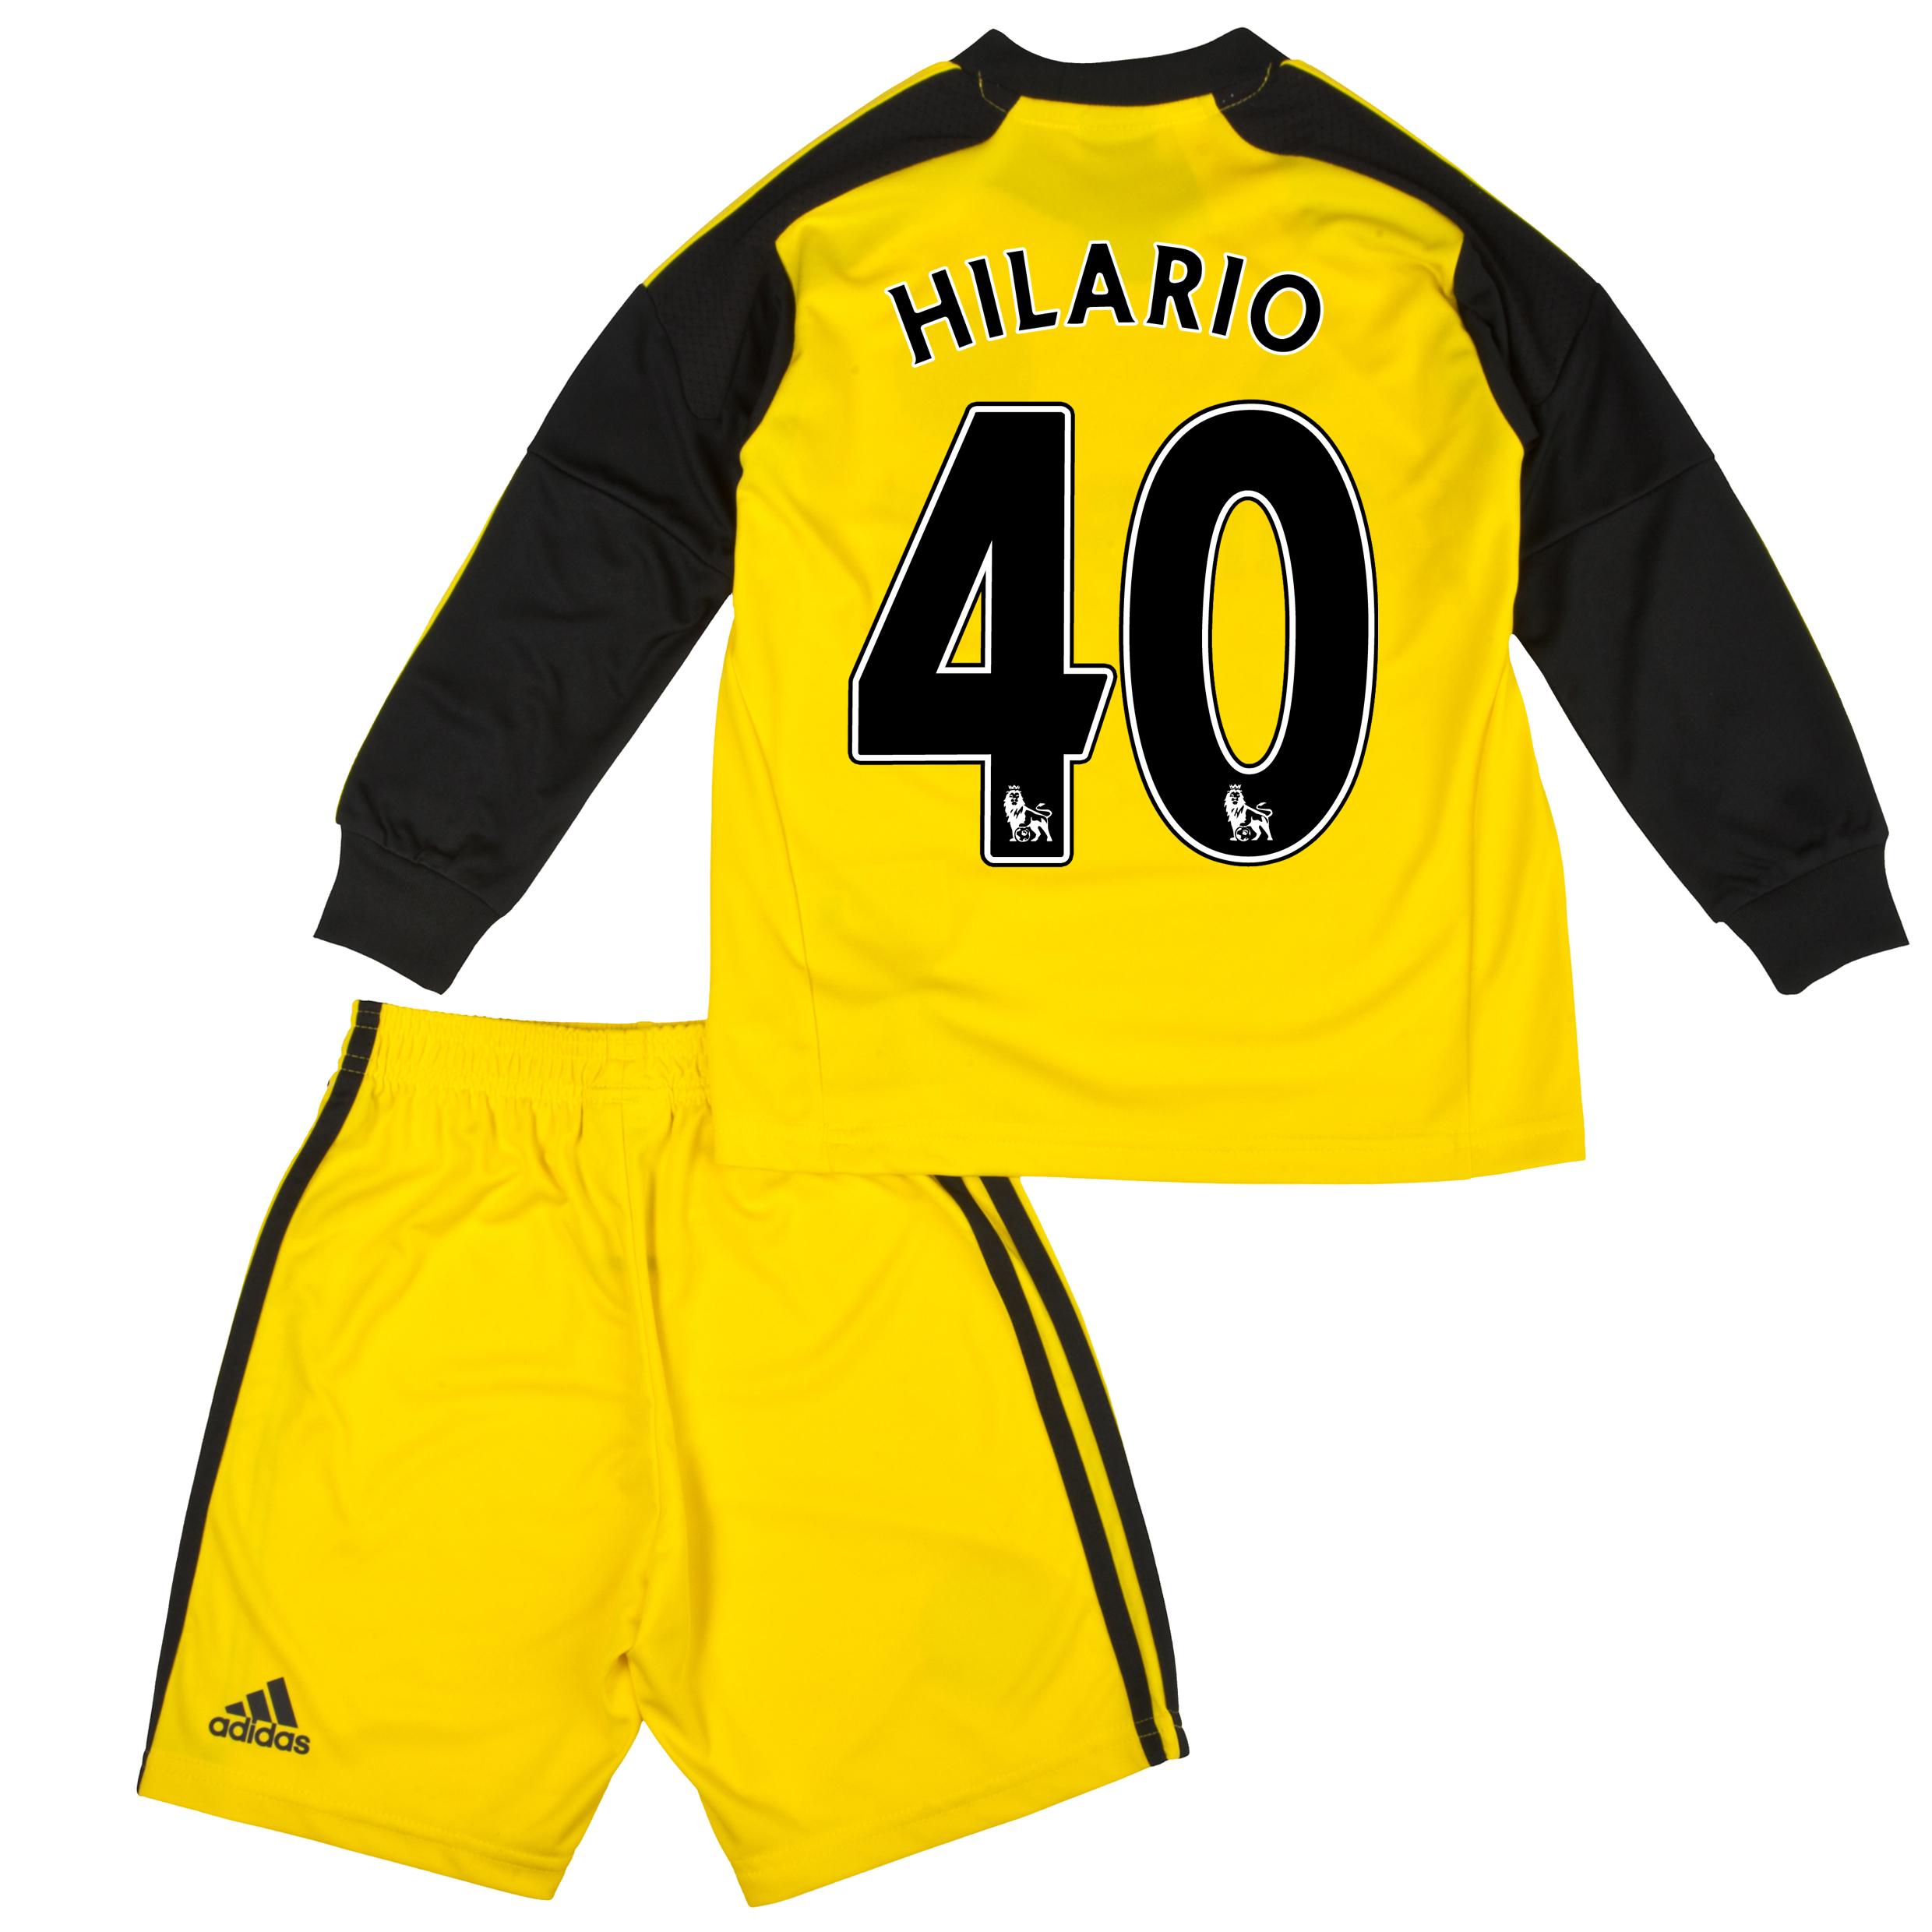 Chelsea Home Goalkeeper Mini Kit 2013/14 with Hilario 40 printing